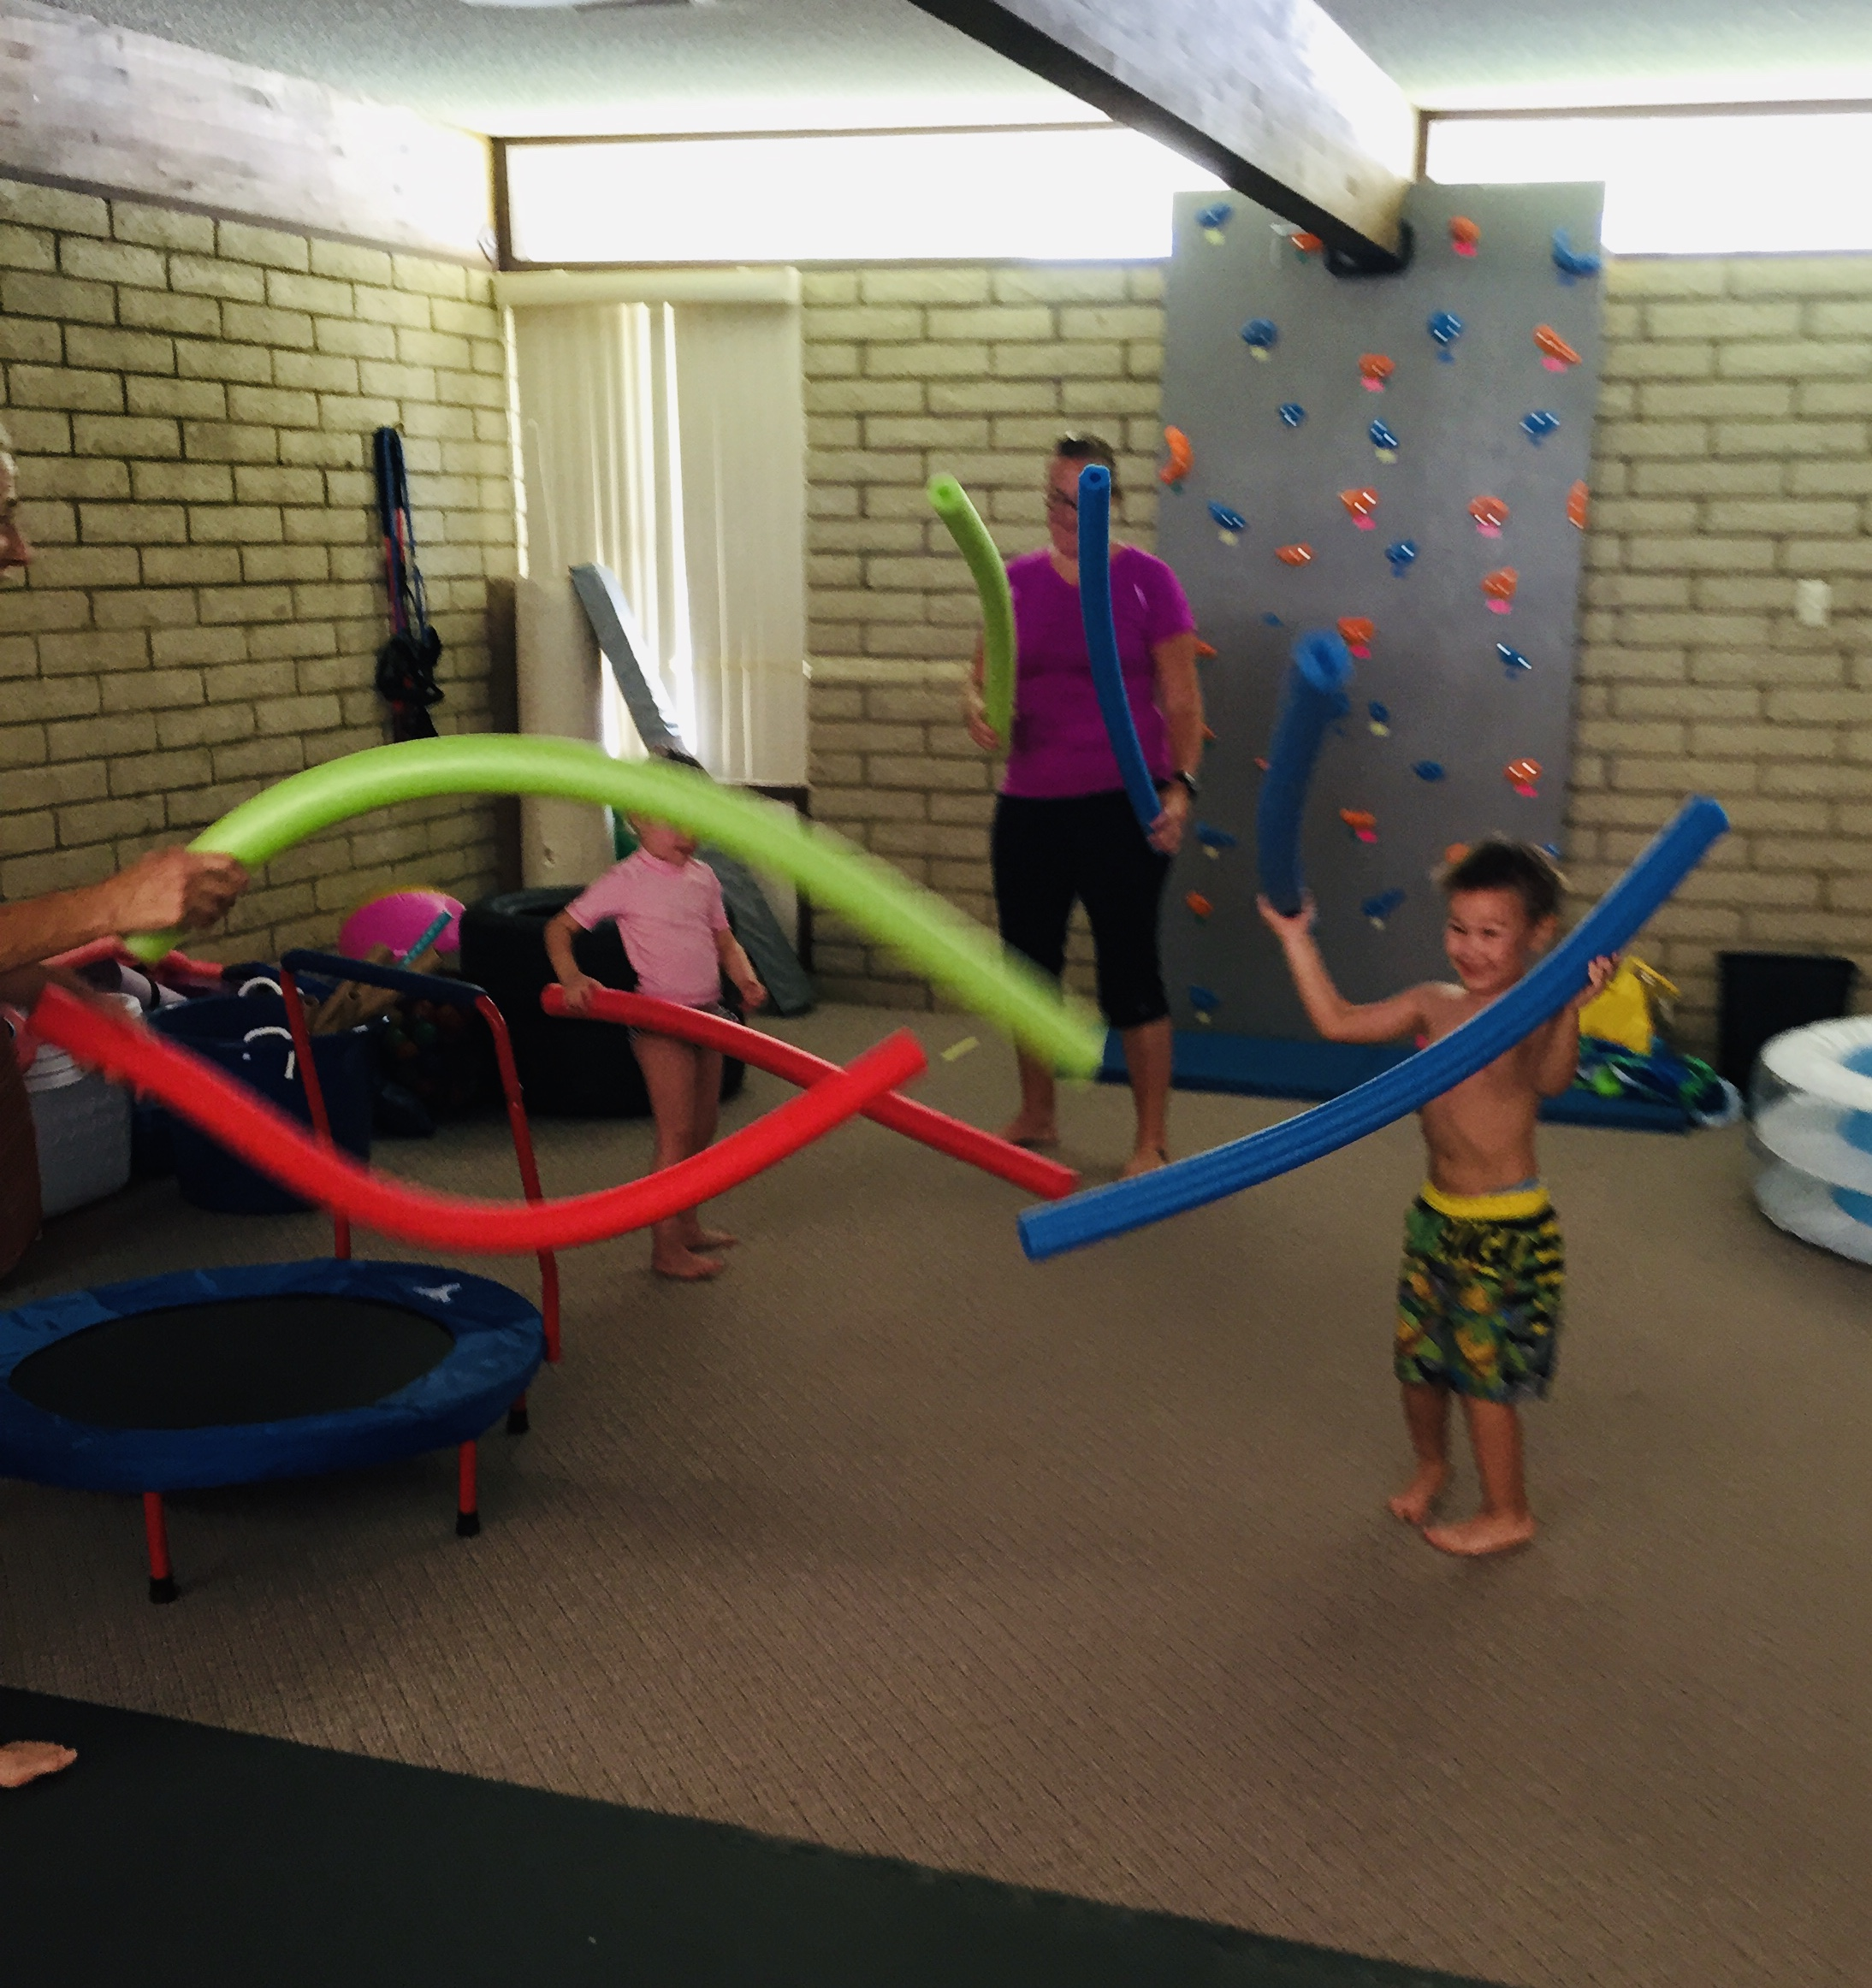 Kids and adult indoors playing with pool noodles